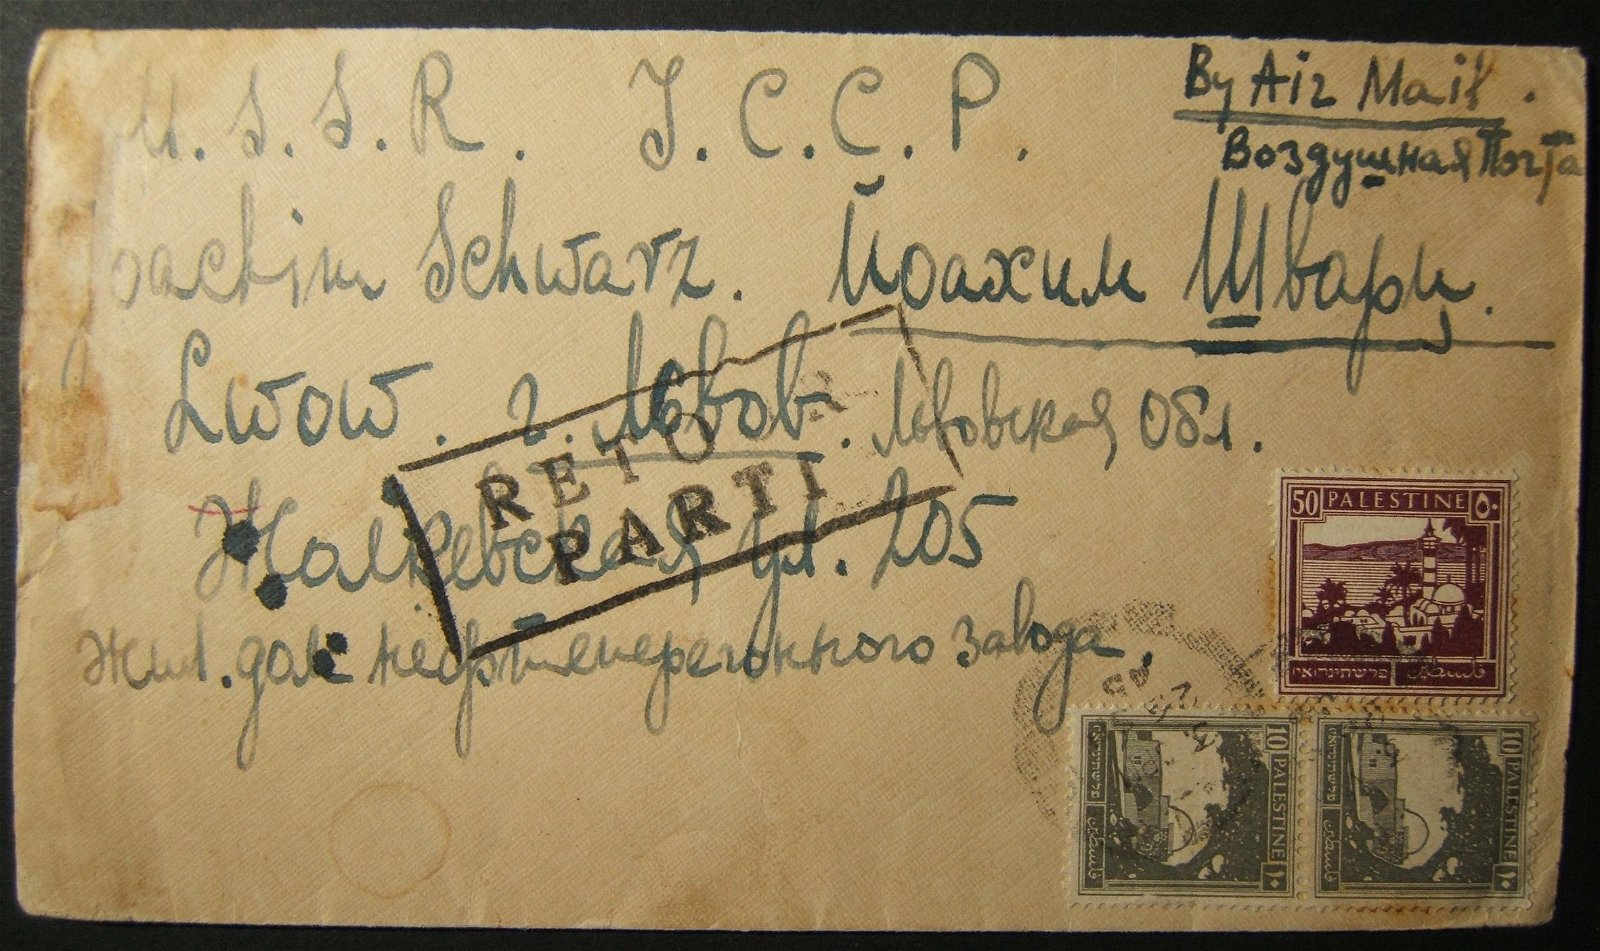 9/1945 postwar WWII airmail ex TLV to LVOV, returned as